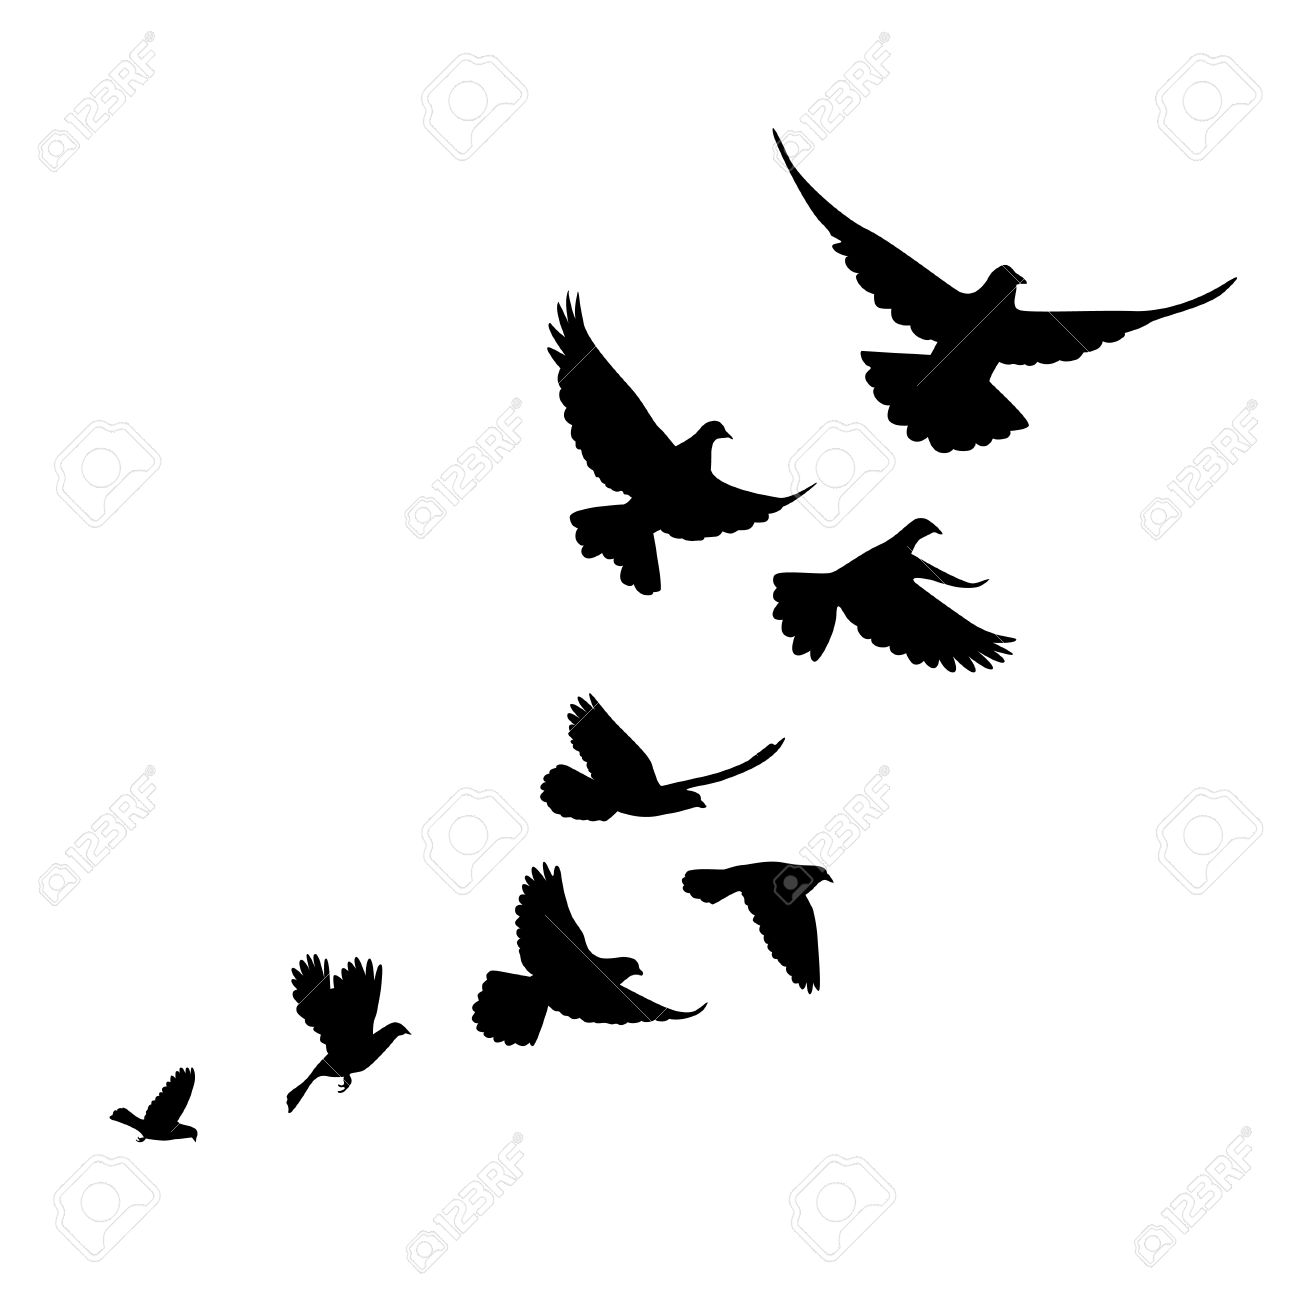 A flock of birds pigeons go up. Black silhouette on a white background. - 52727043